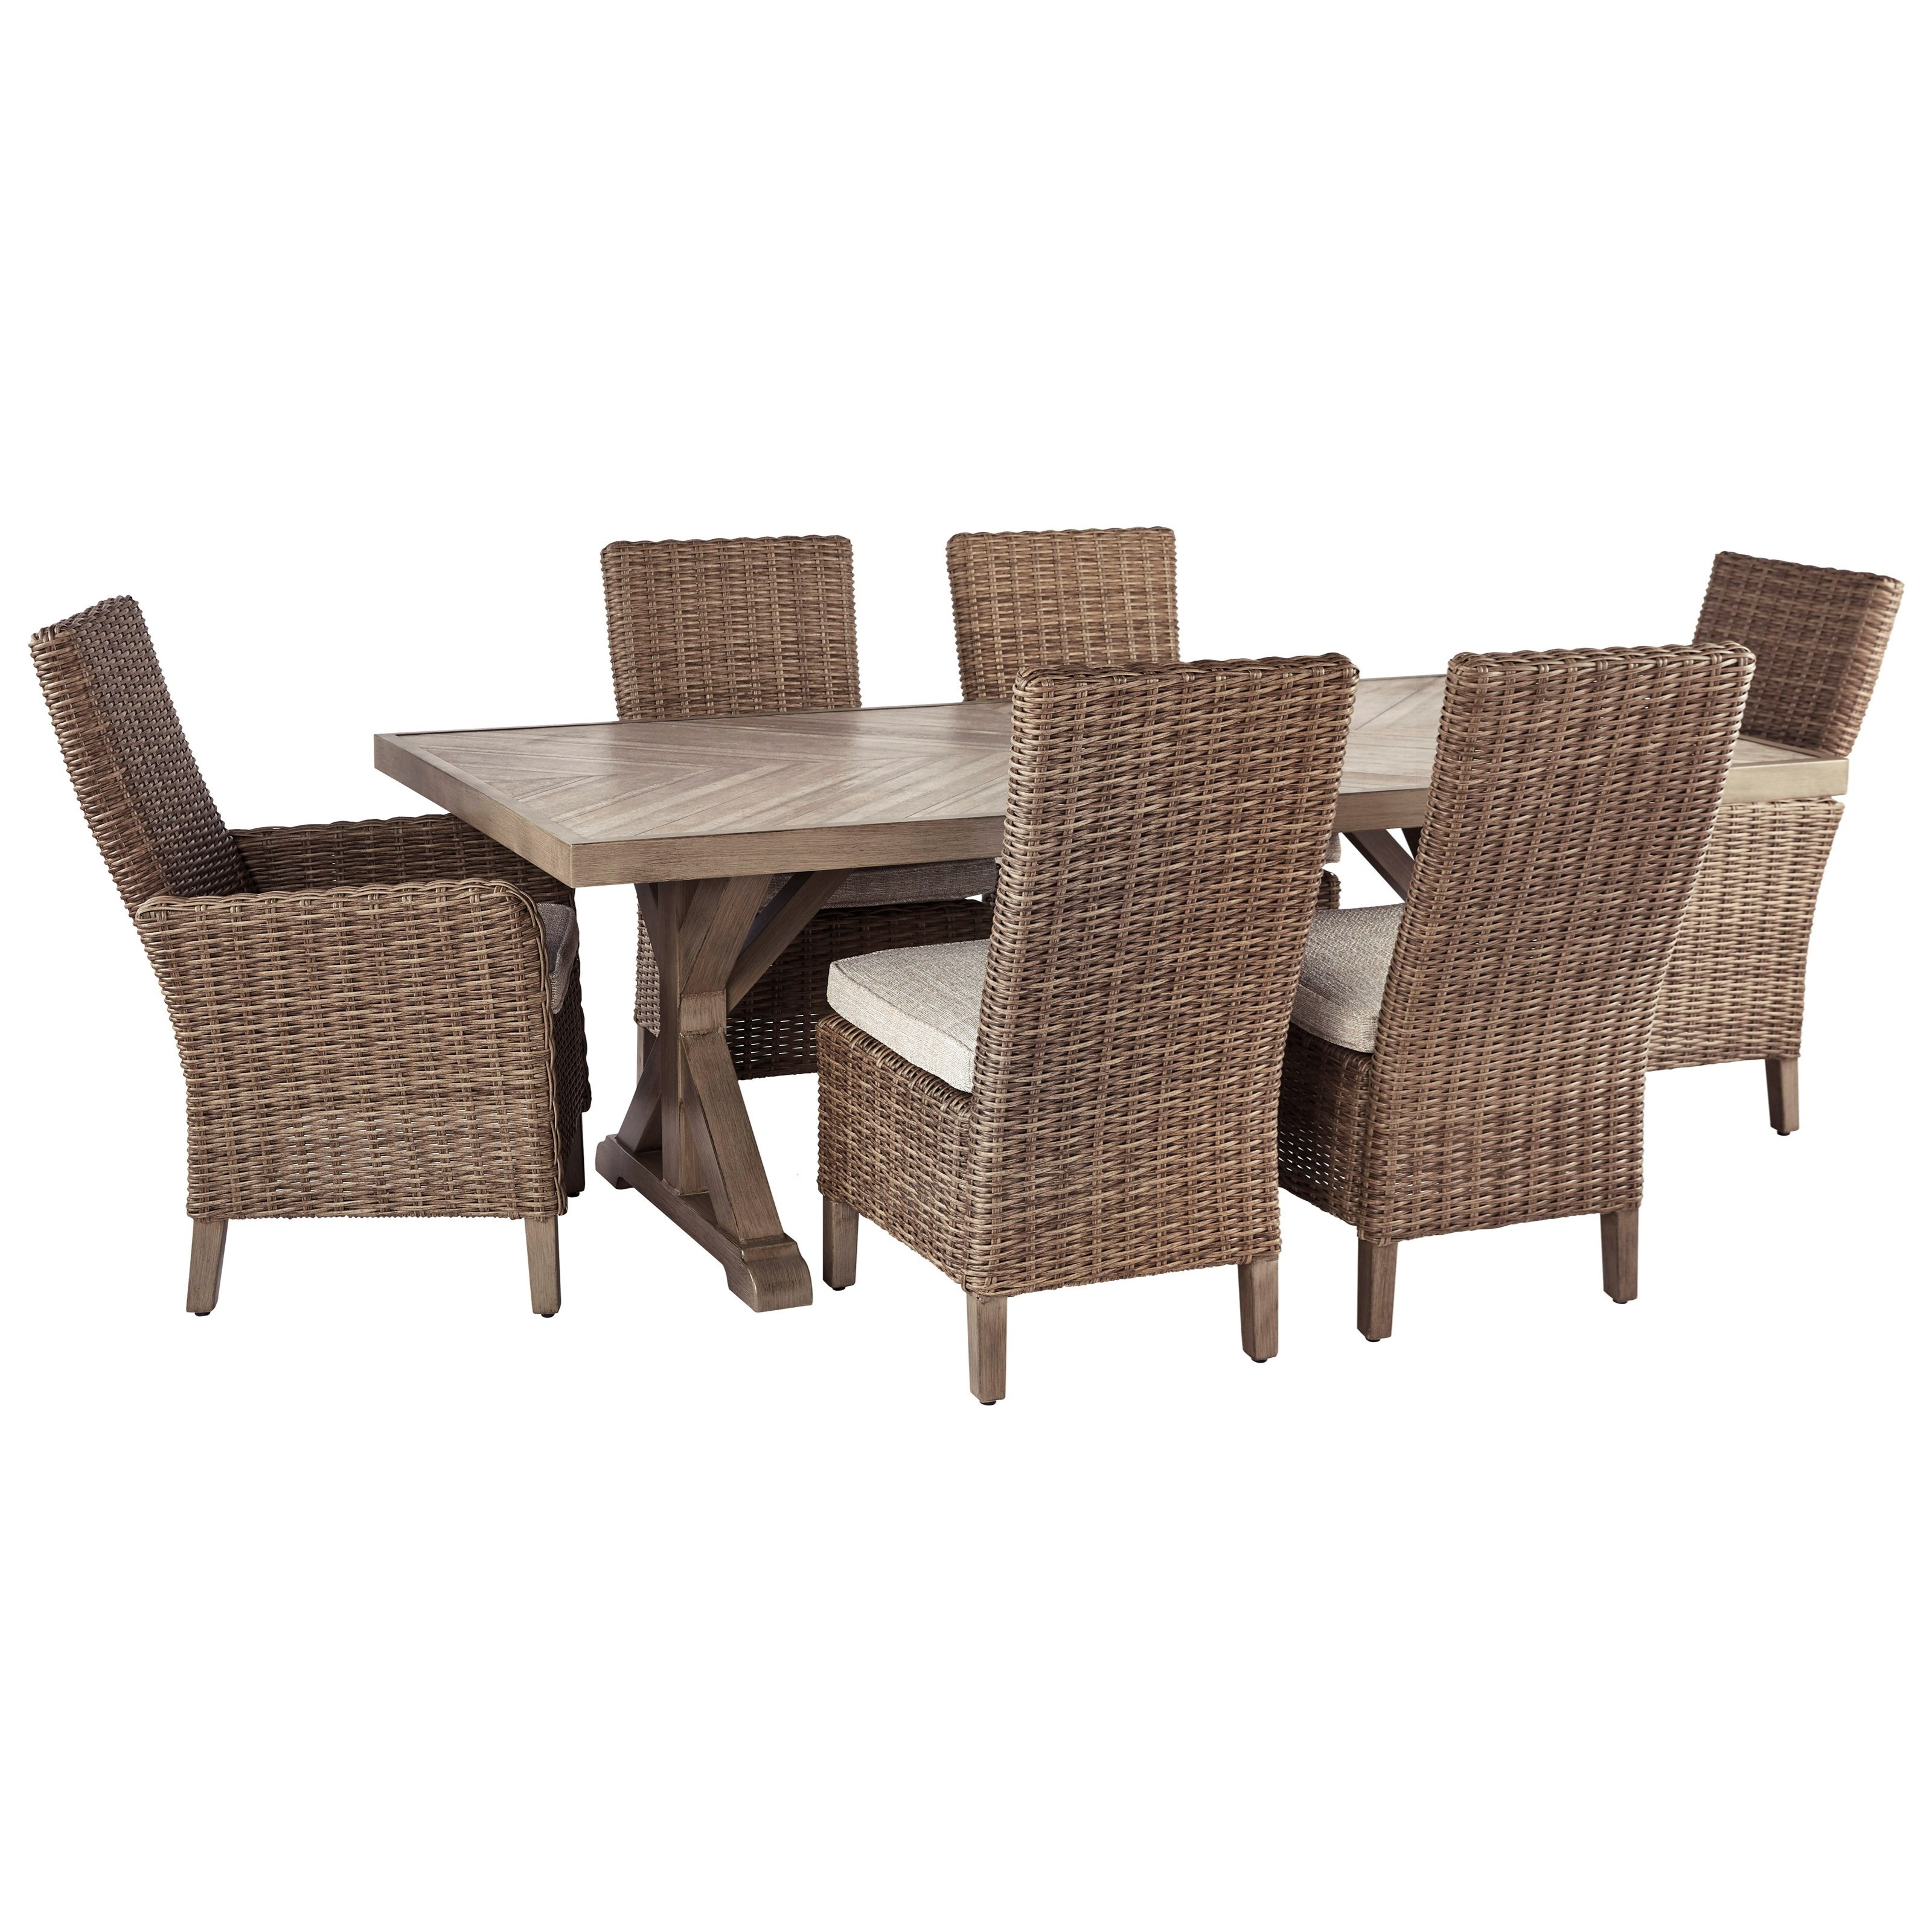 Beachcroft 7 Piece Outdoor Dining Set by Signature Design by Ashley at Household Furniture